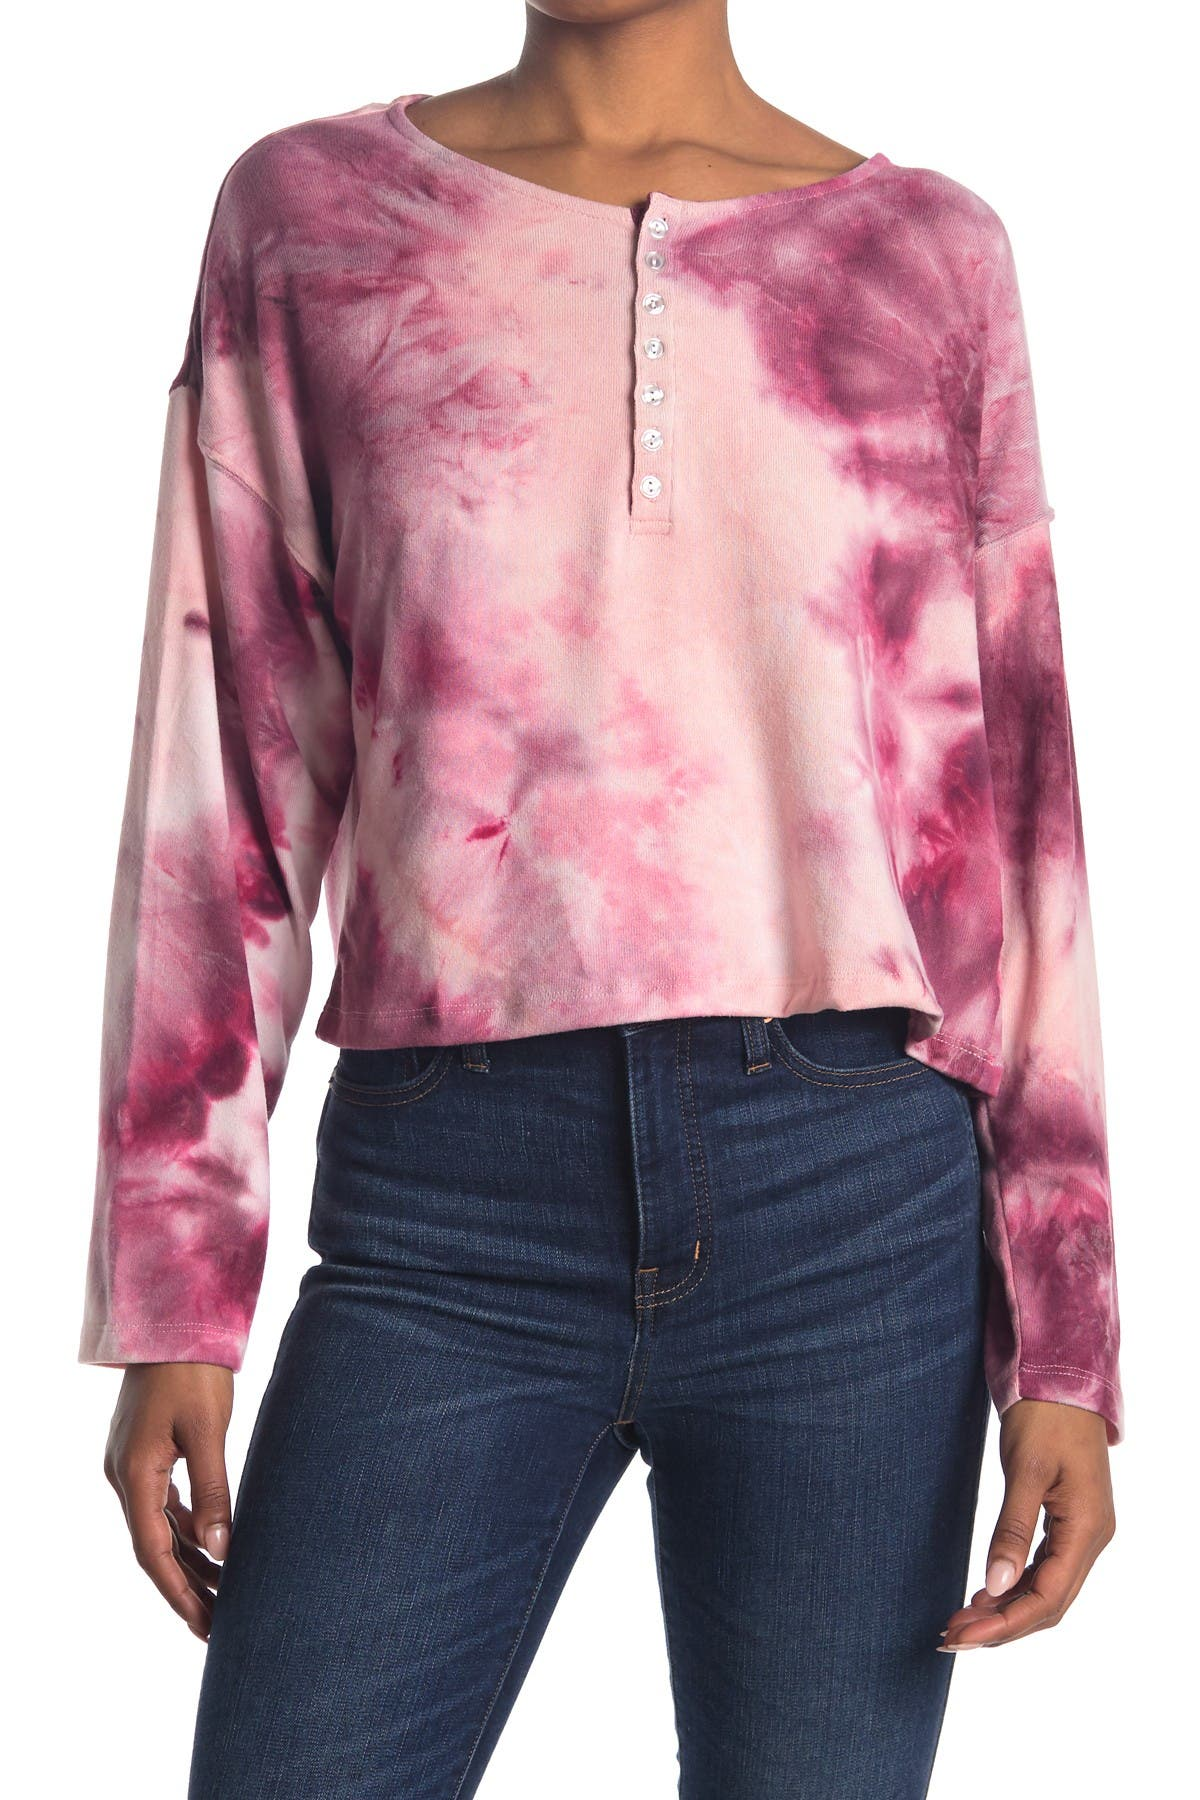 Image of ROW A Long Sleeve Tie Dye Top